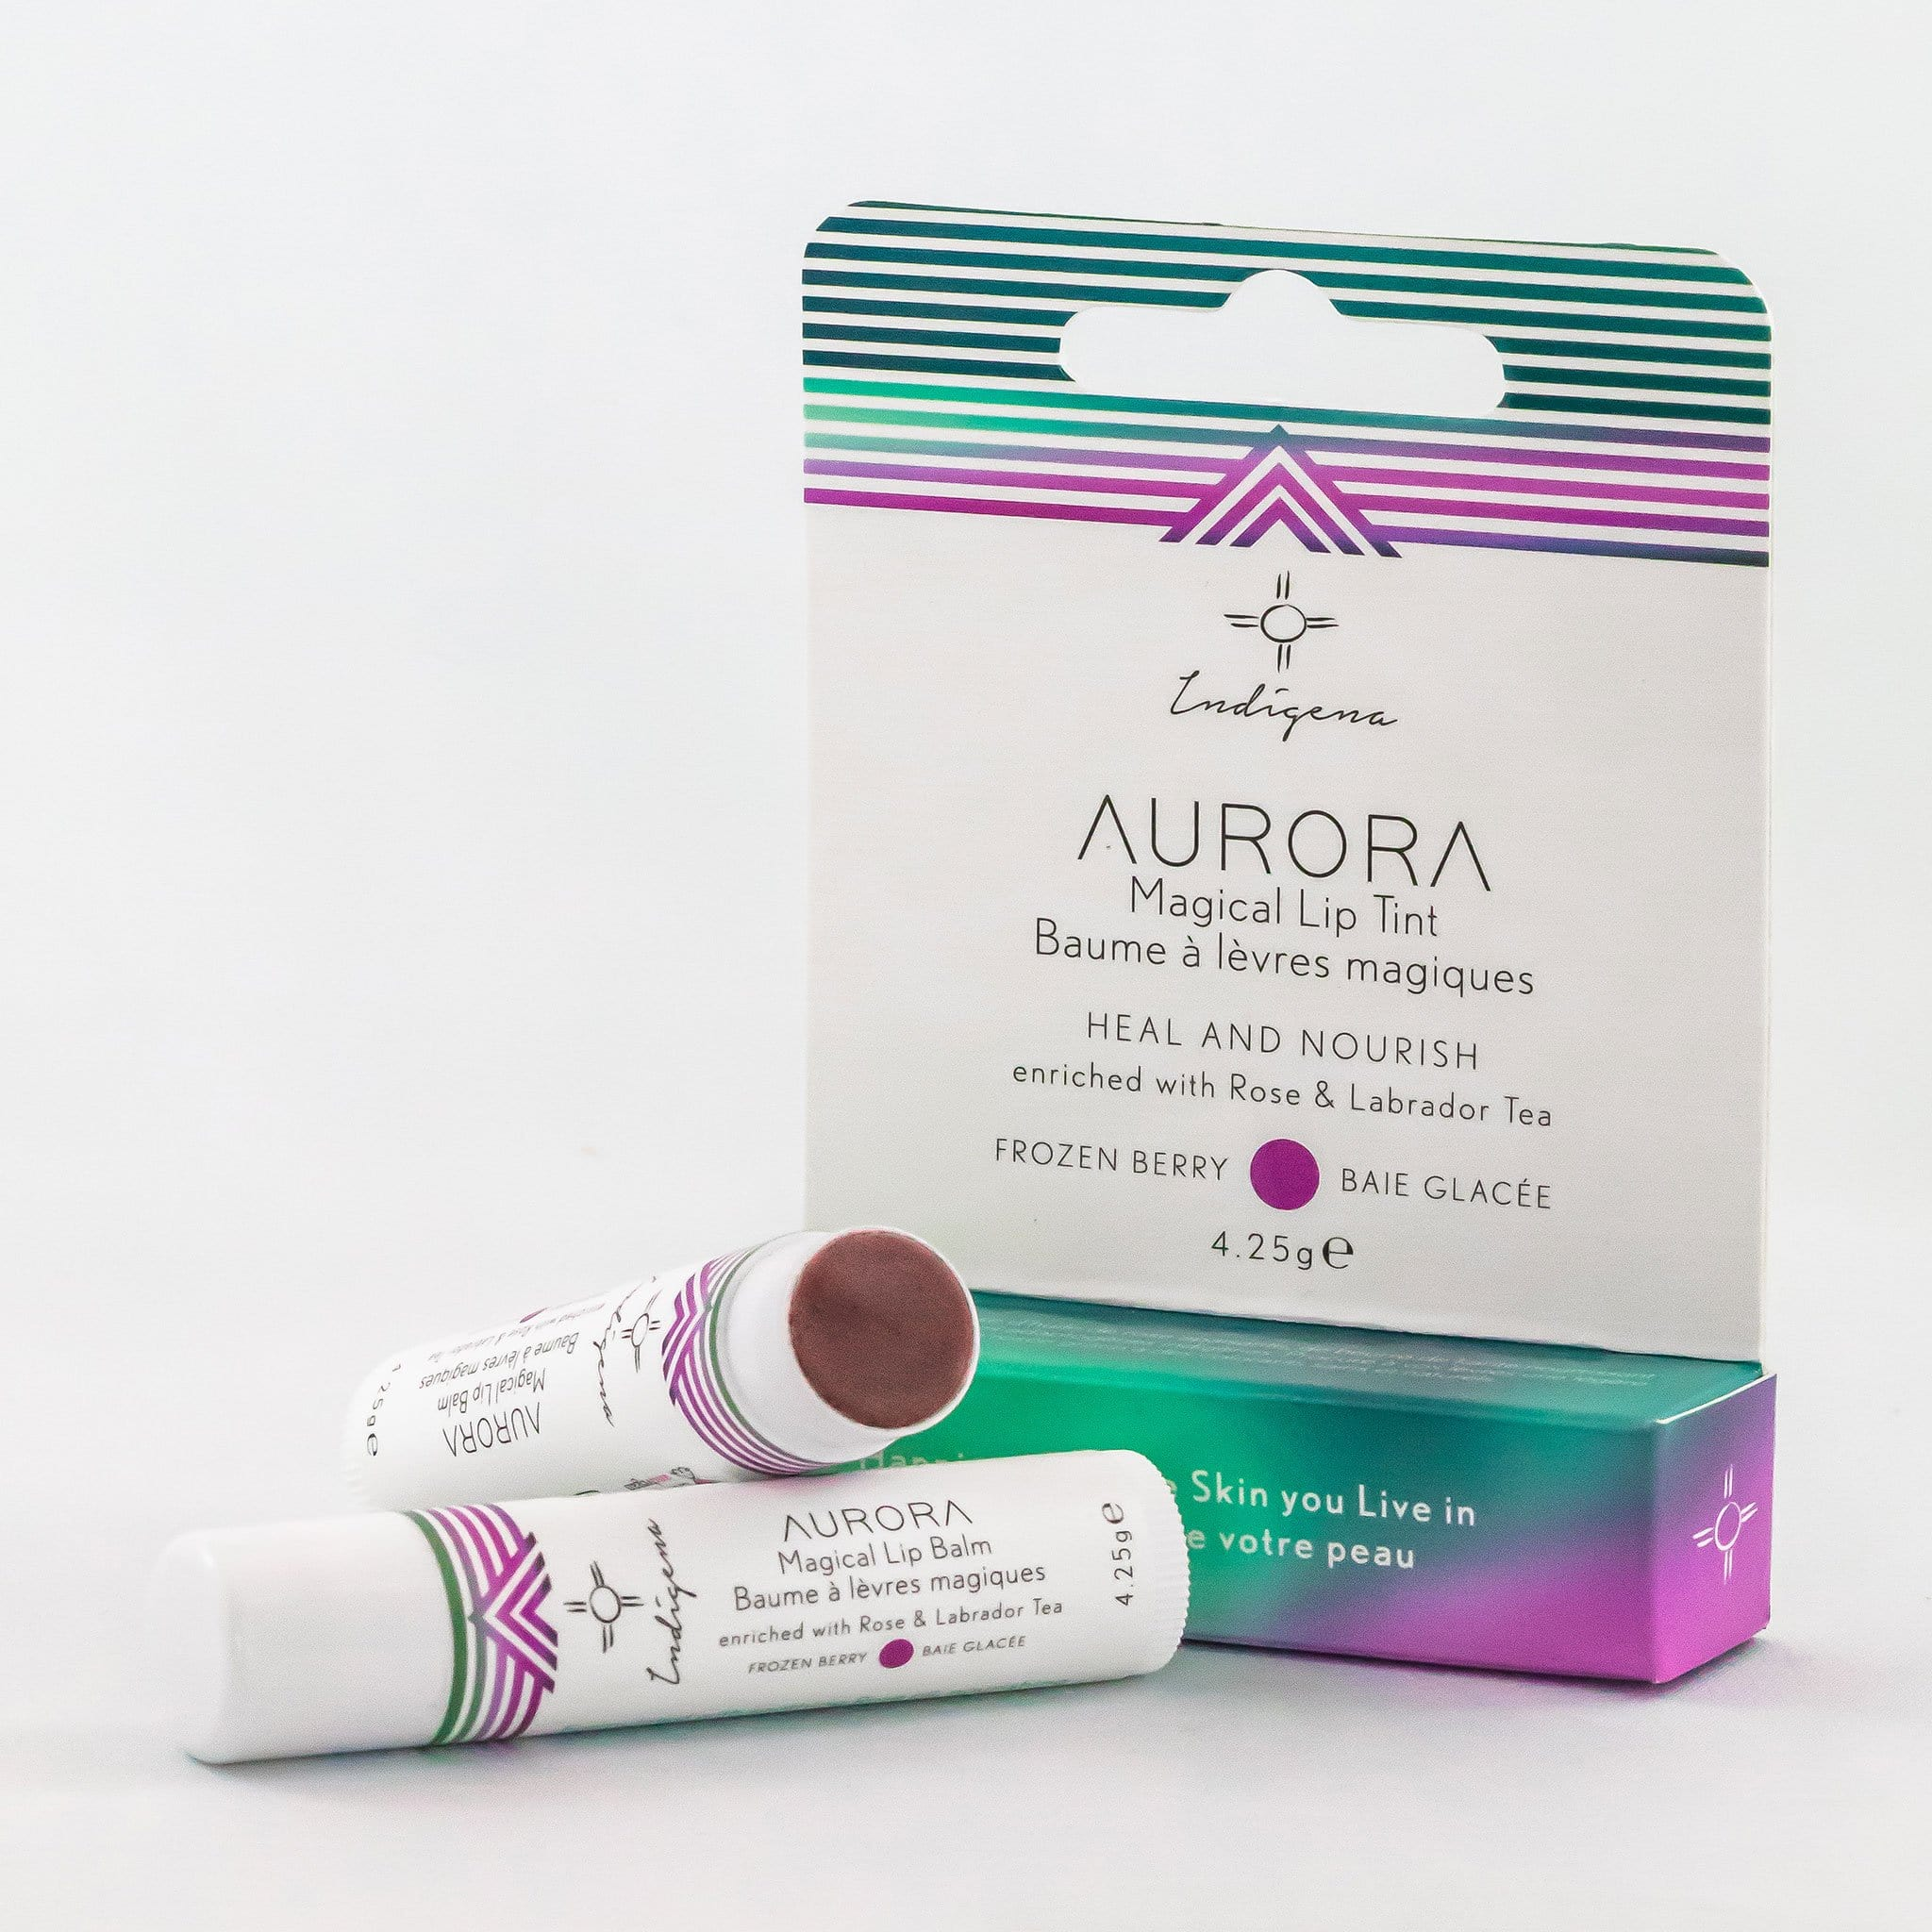 Aurora Magical Lip Tint